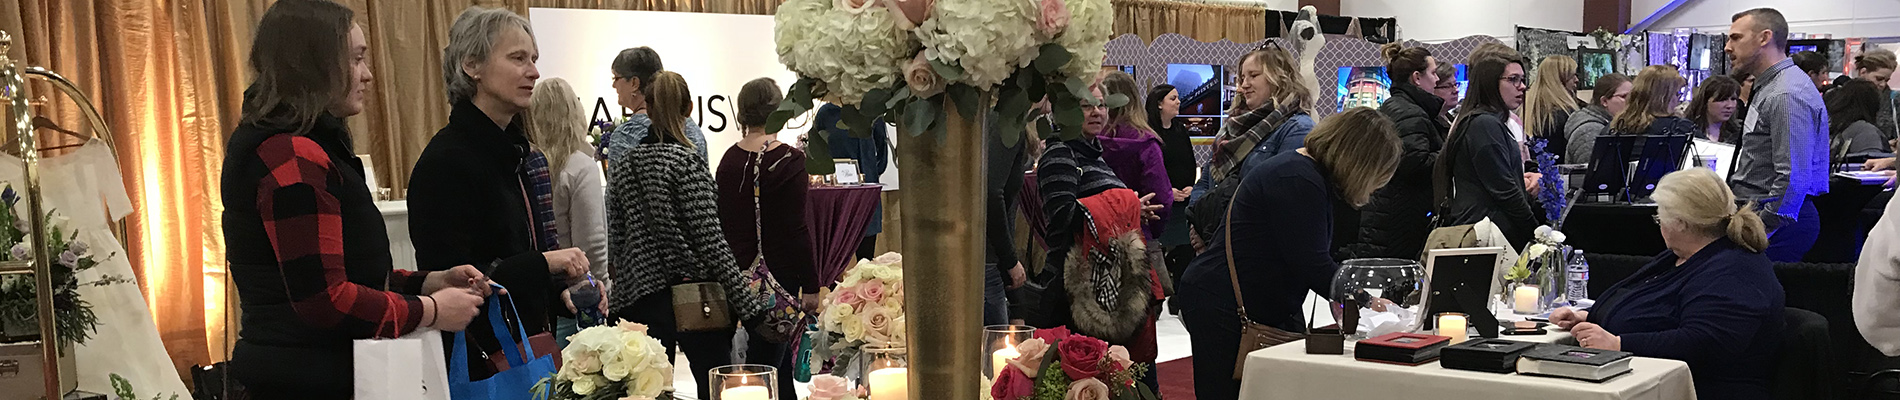 Wedding Show Booth | Table Display at a Bridal Expo